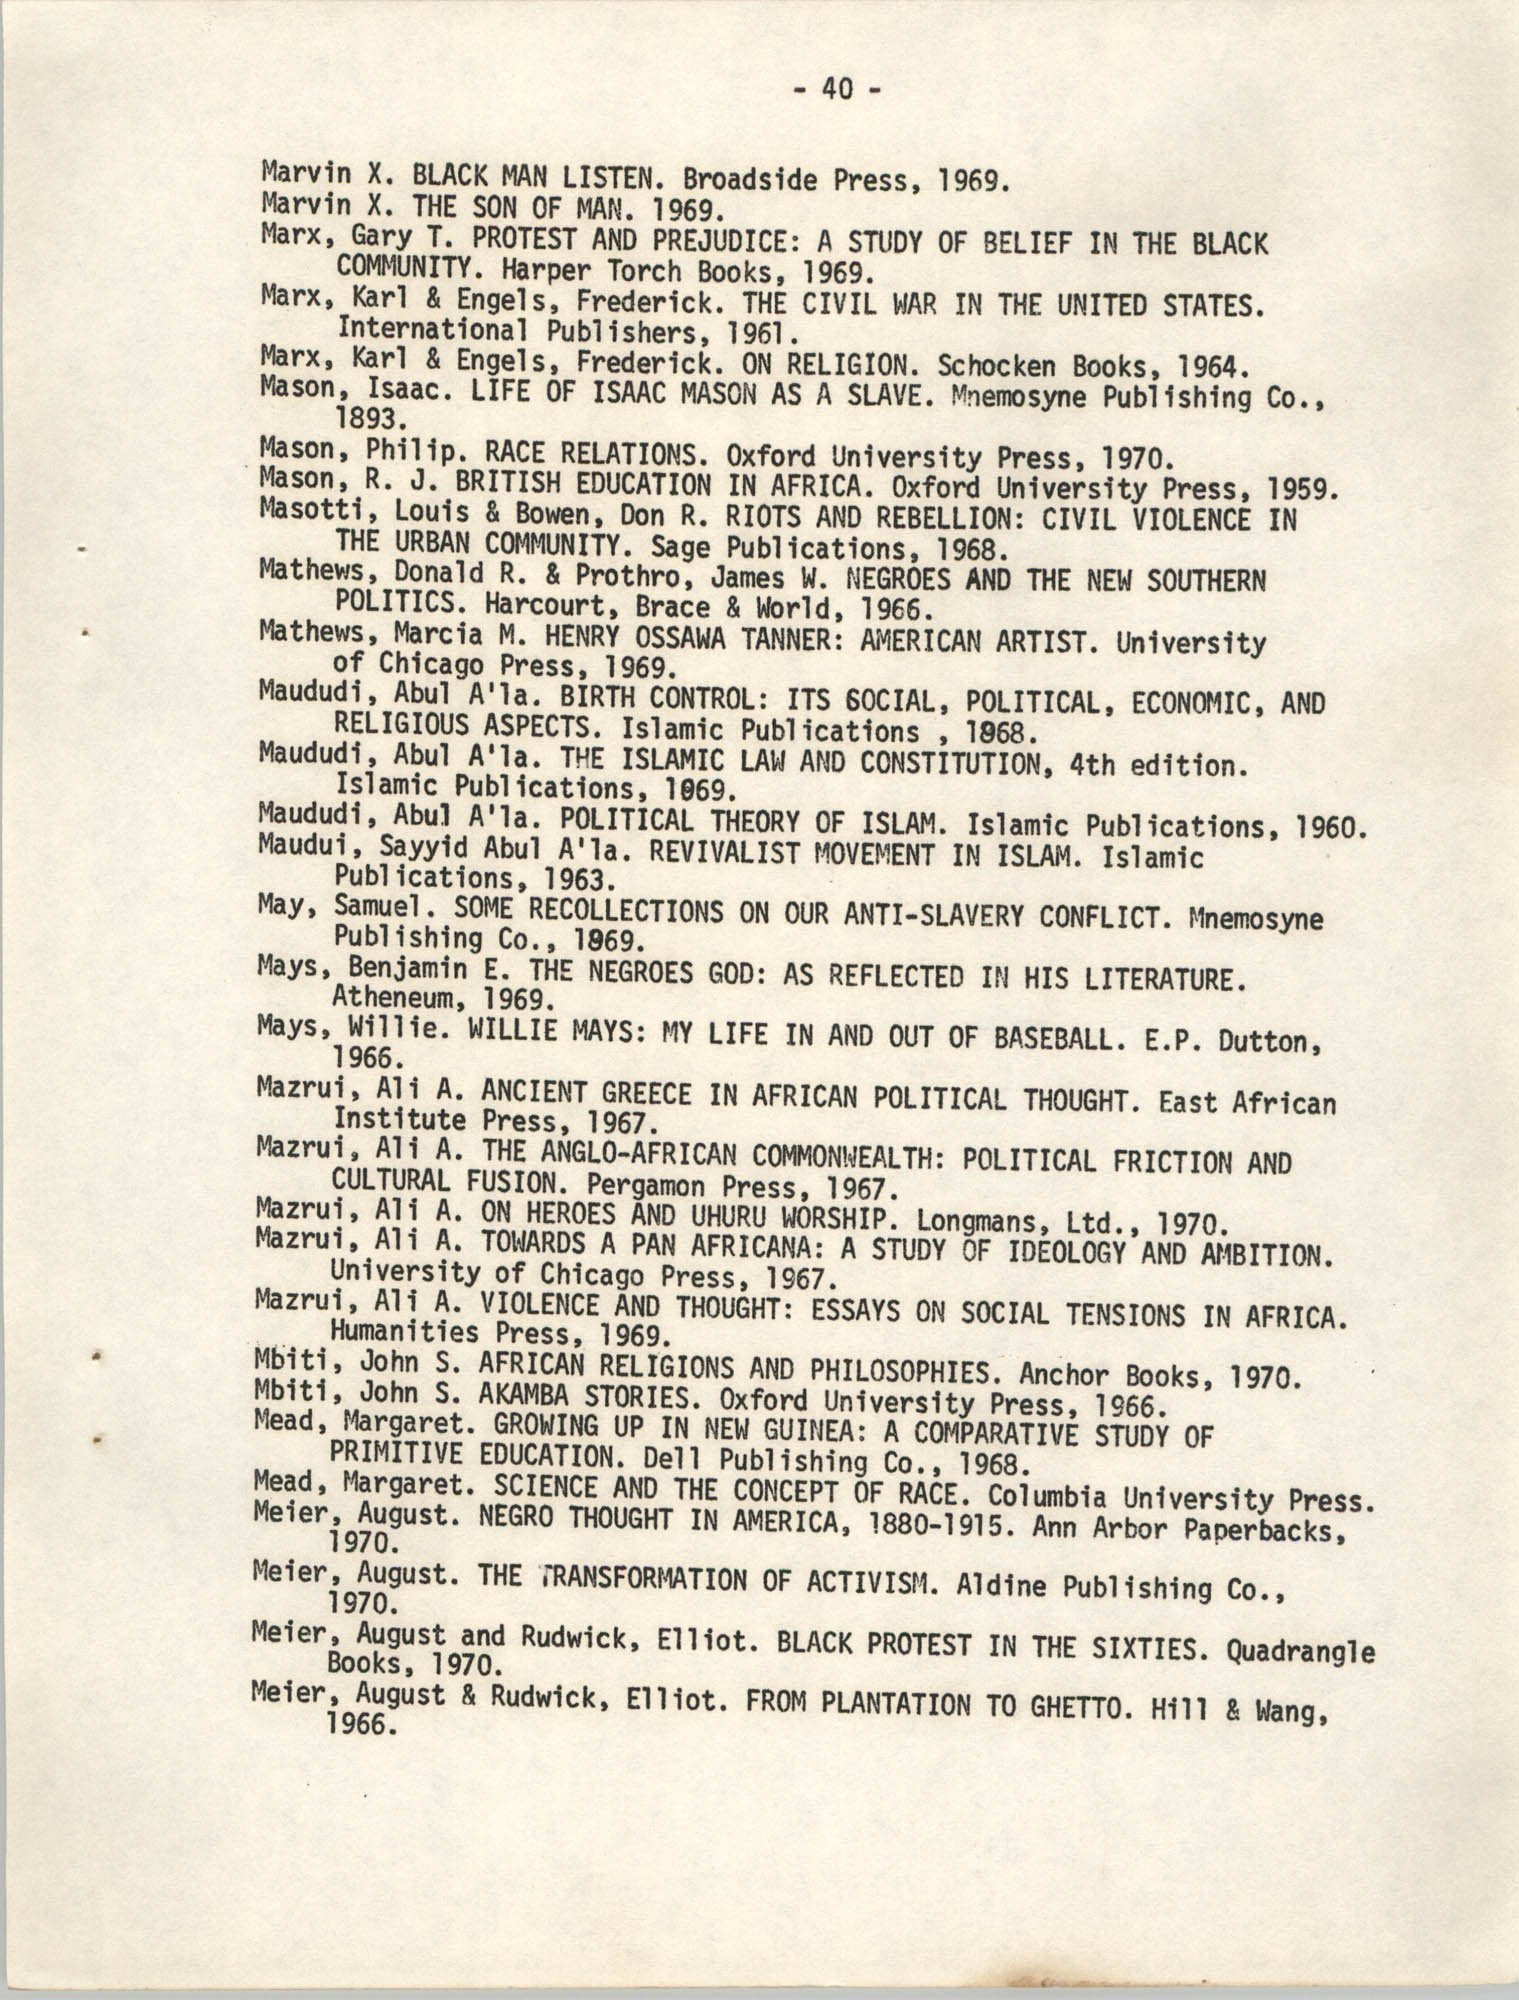 Howard University Department of Afro-American Studies Reading Materials, Page 40